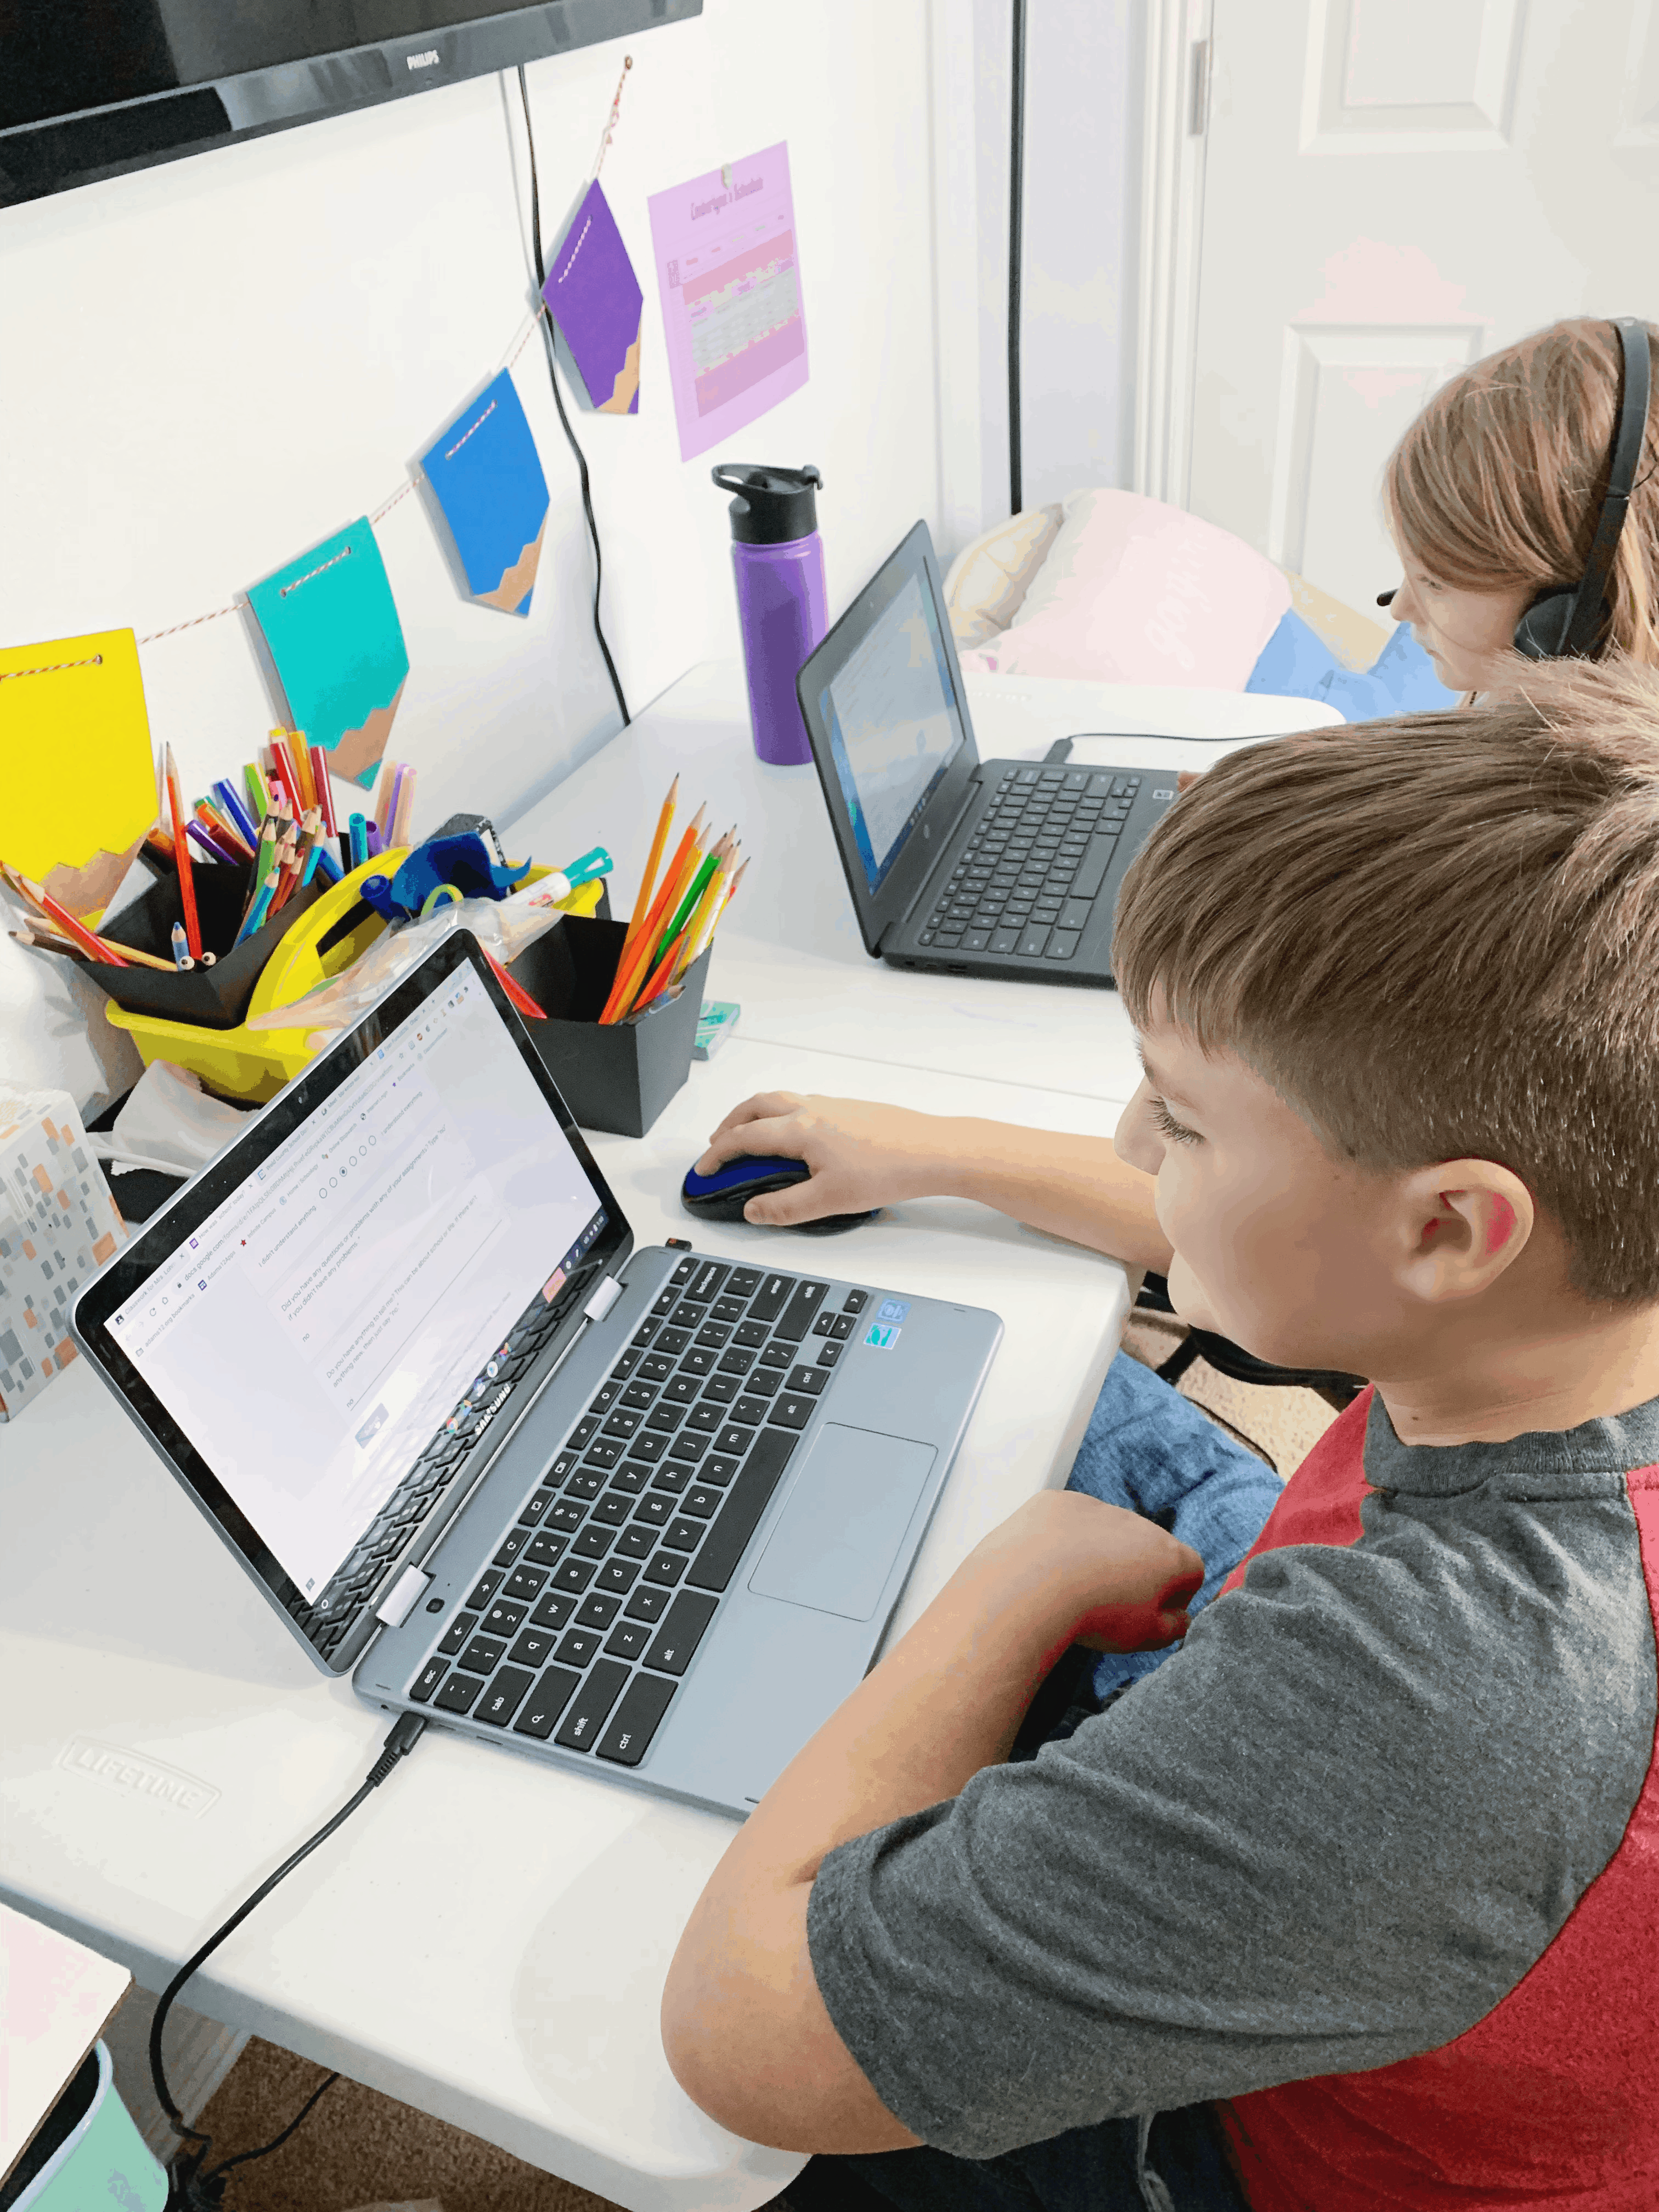 5 Tips to Help Children Transition to Remote Schooling